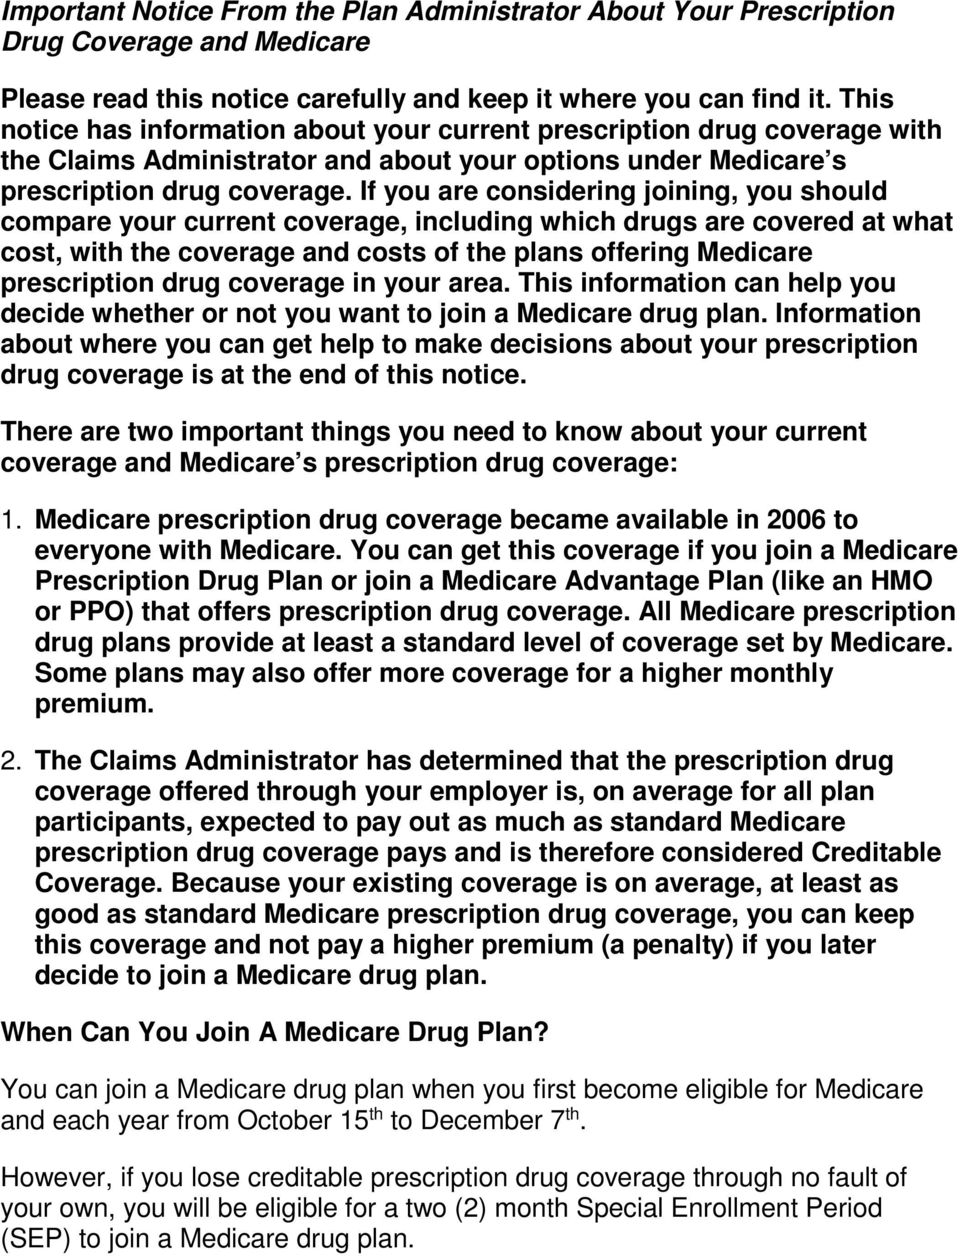 If you are considering joining, you should compare your current coverage, including which drugs are covered at what cost, with the coverage and costs of the plans offering Medicare prescription drug